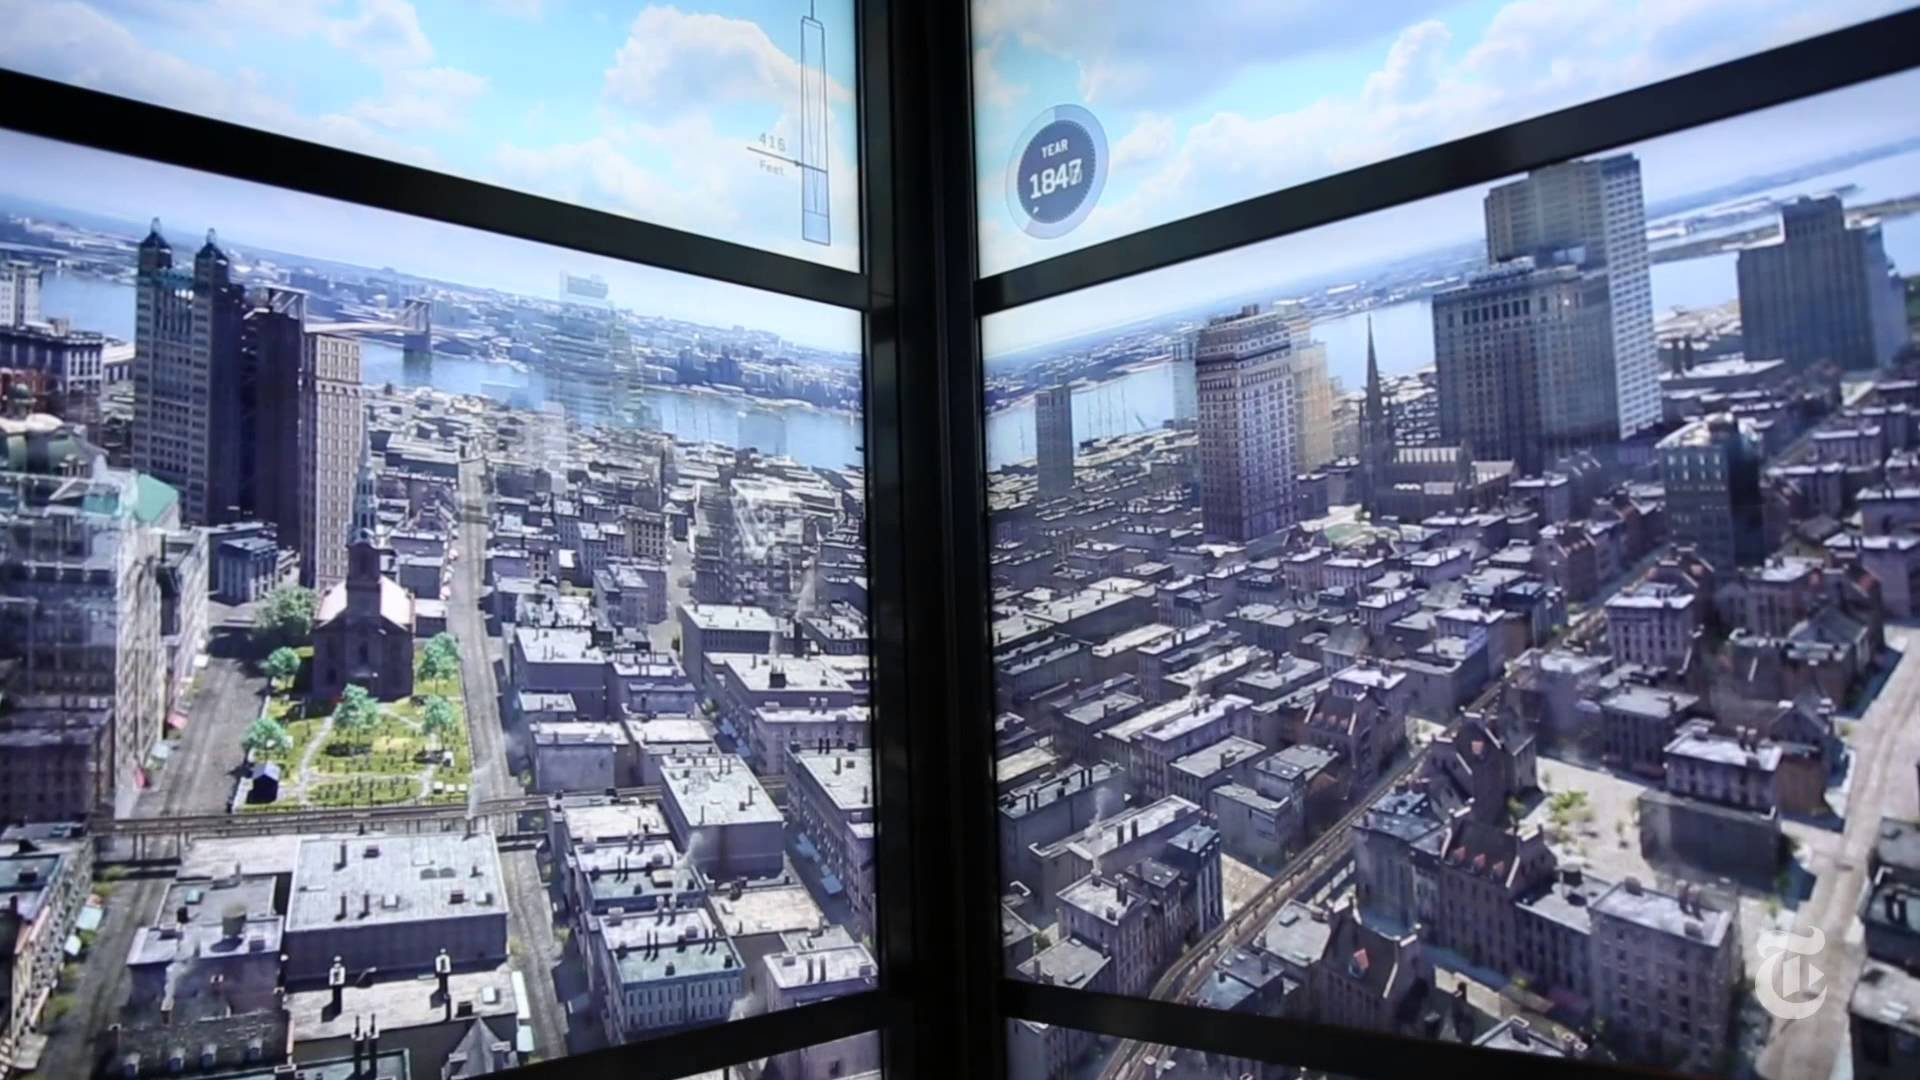 1 World Trade Centers Timelapse Of NYC Through The Ages Is Breathtaking maxresdefault1